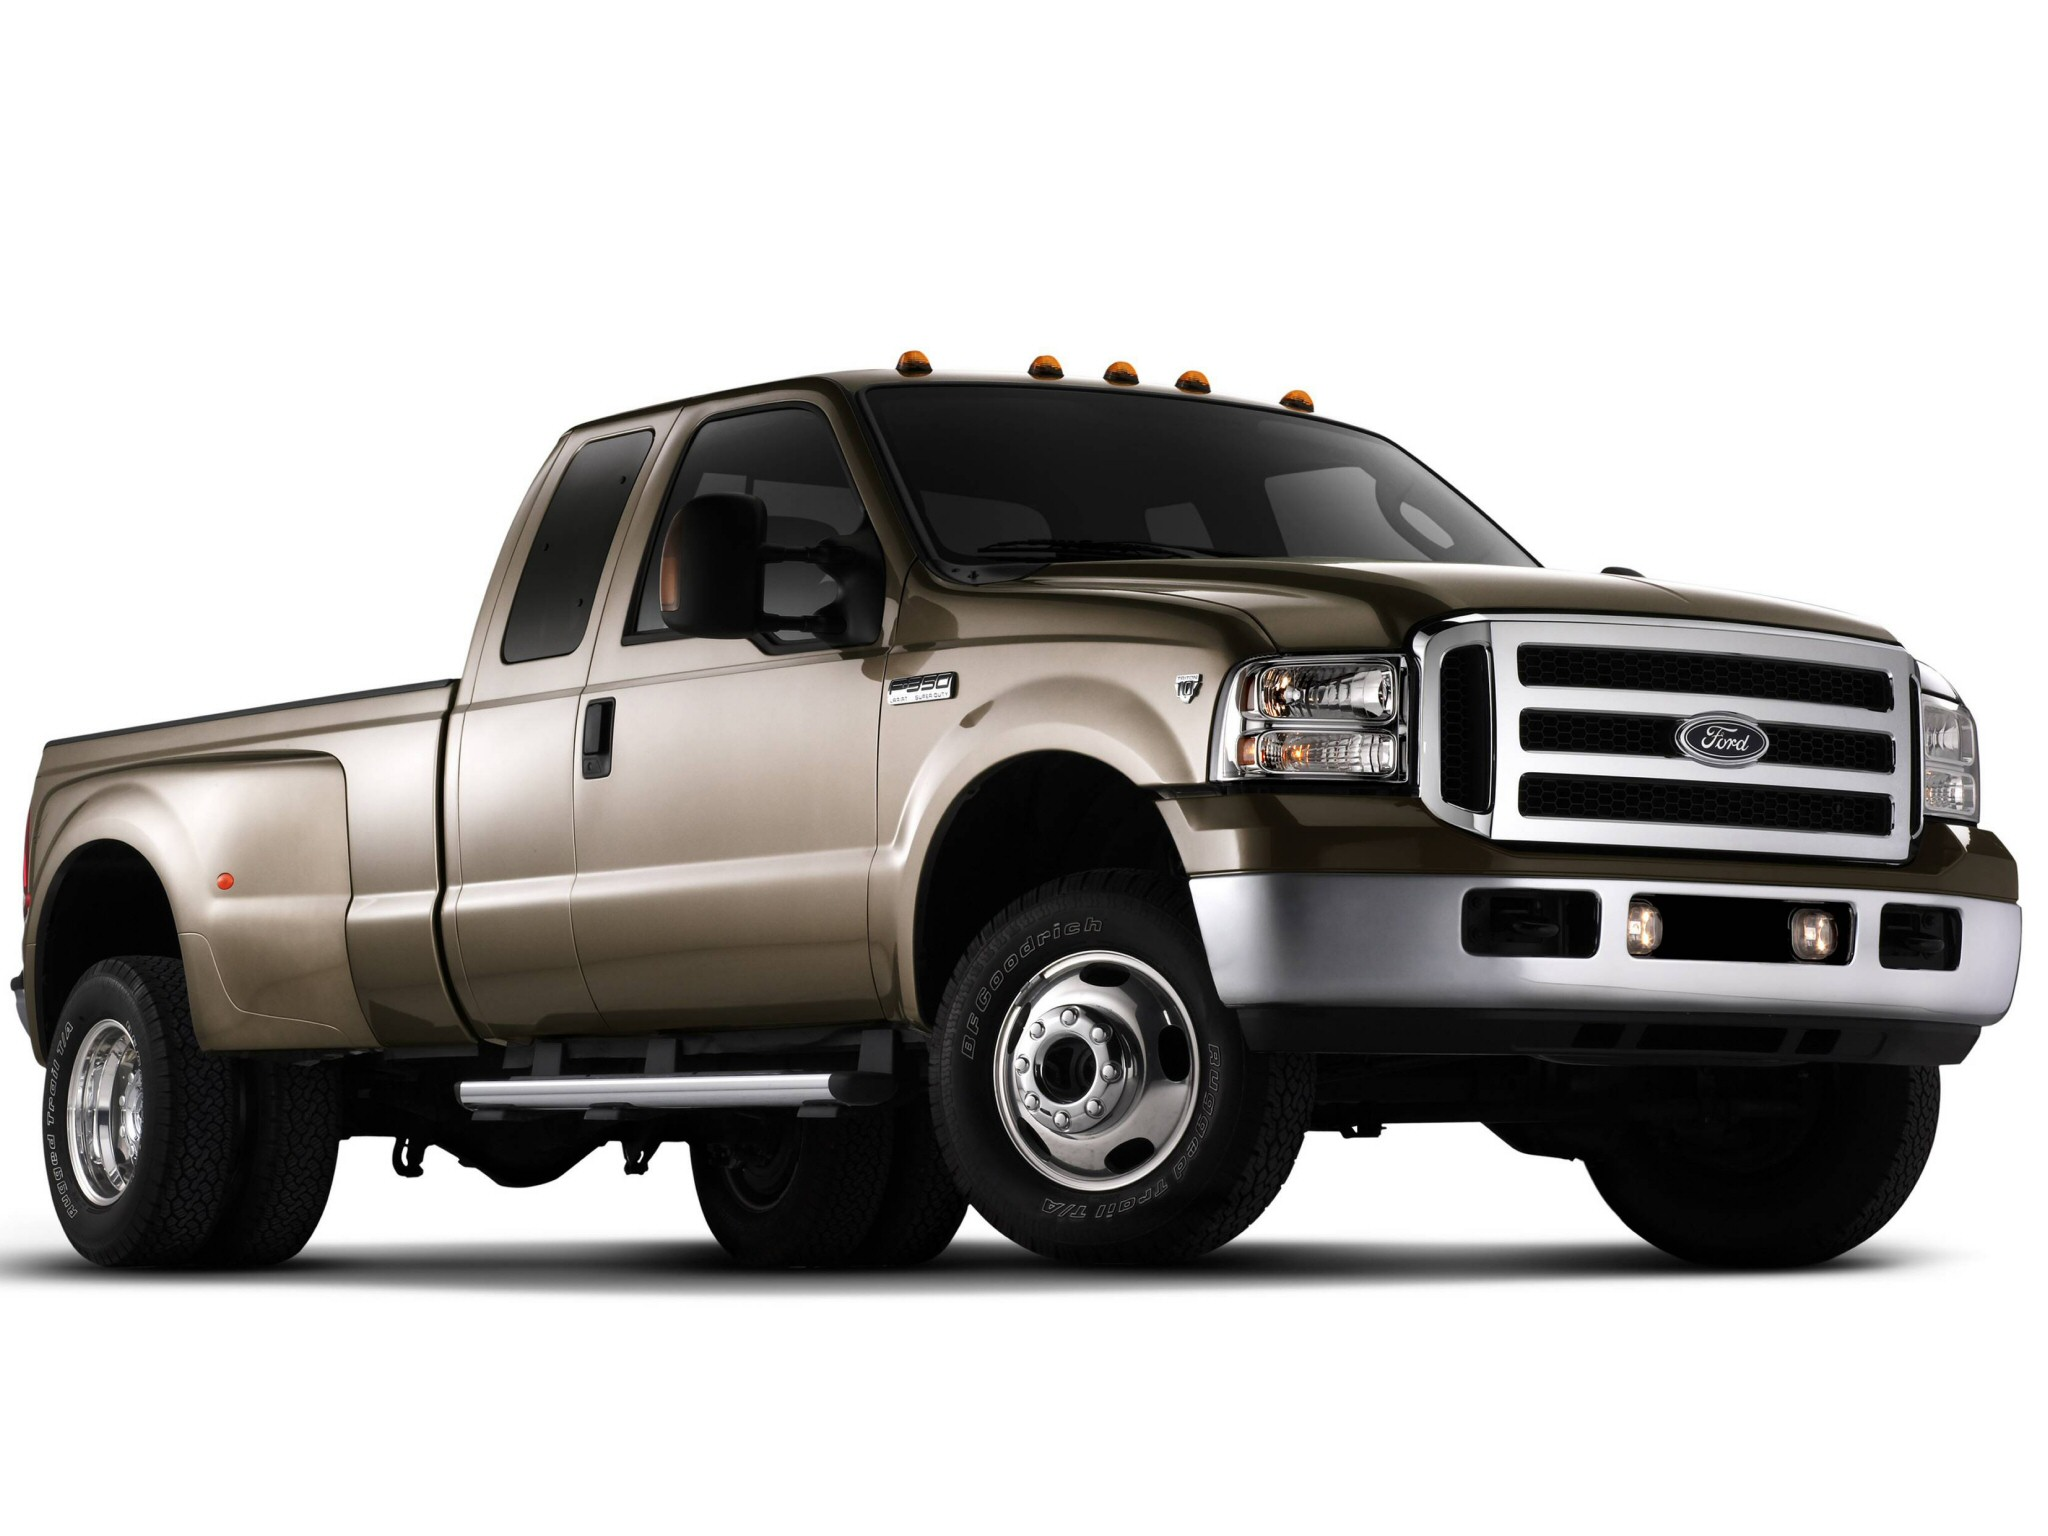 2011 Ford F-350 Super Duty #11